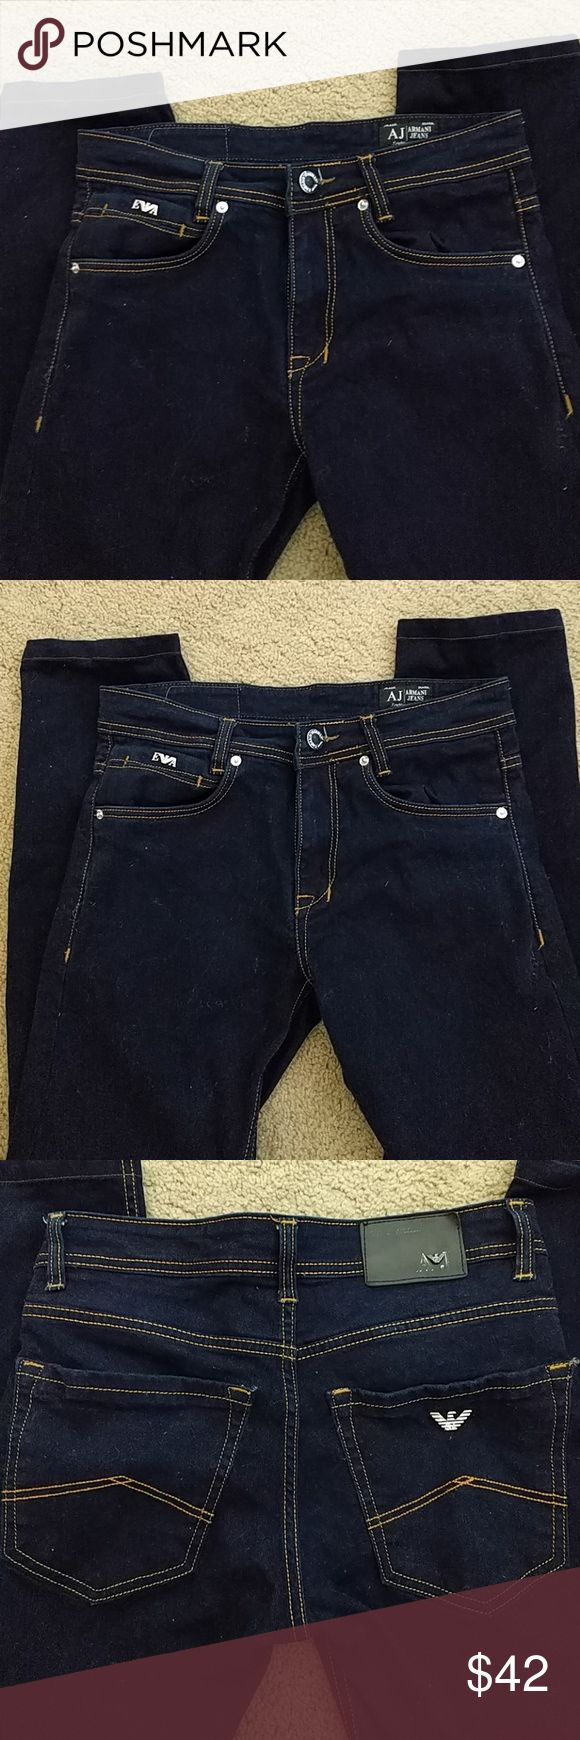 EUC Armani Exchange Skinny Jeans Sz 30 Worn once. Look brand, brand new. Inseam is 30 inches. Jeans have some stretch, but not alot. 100% cotton.  Great investment piece!  N/S pet free home. Xposted. Shipping included in price. Armani Exchange Jeans